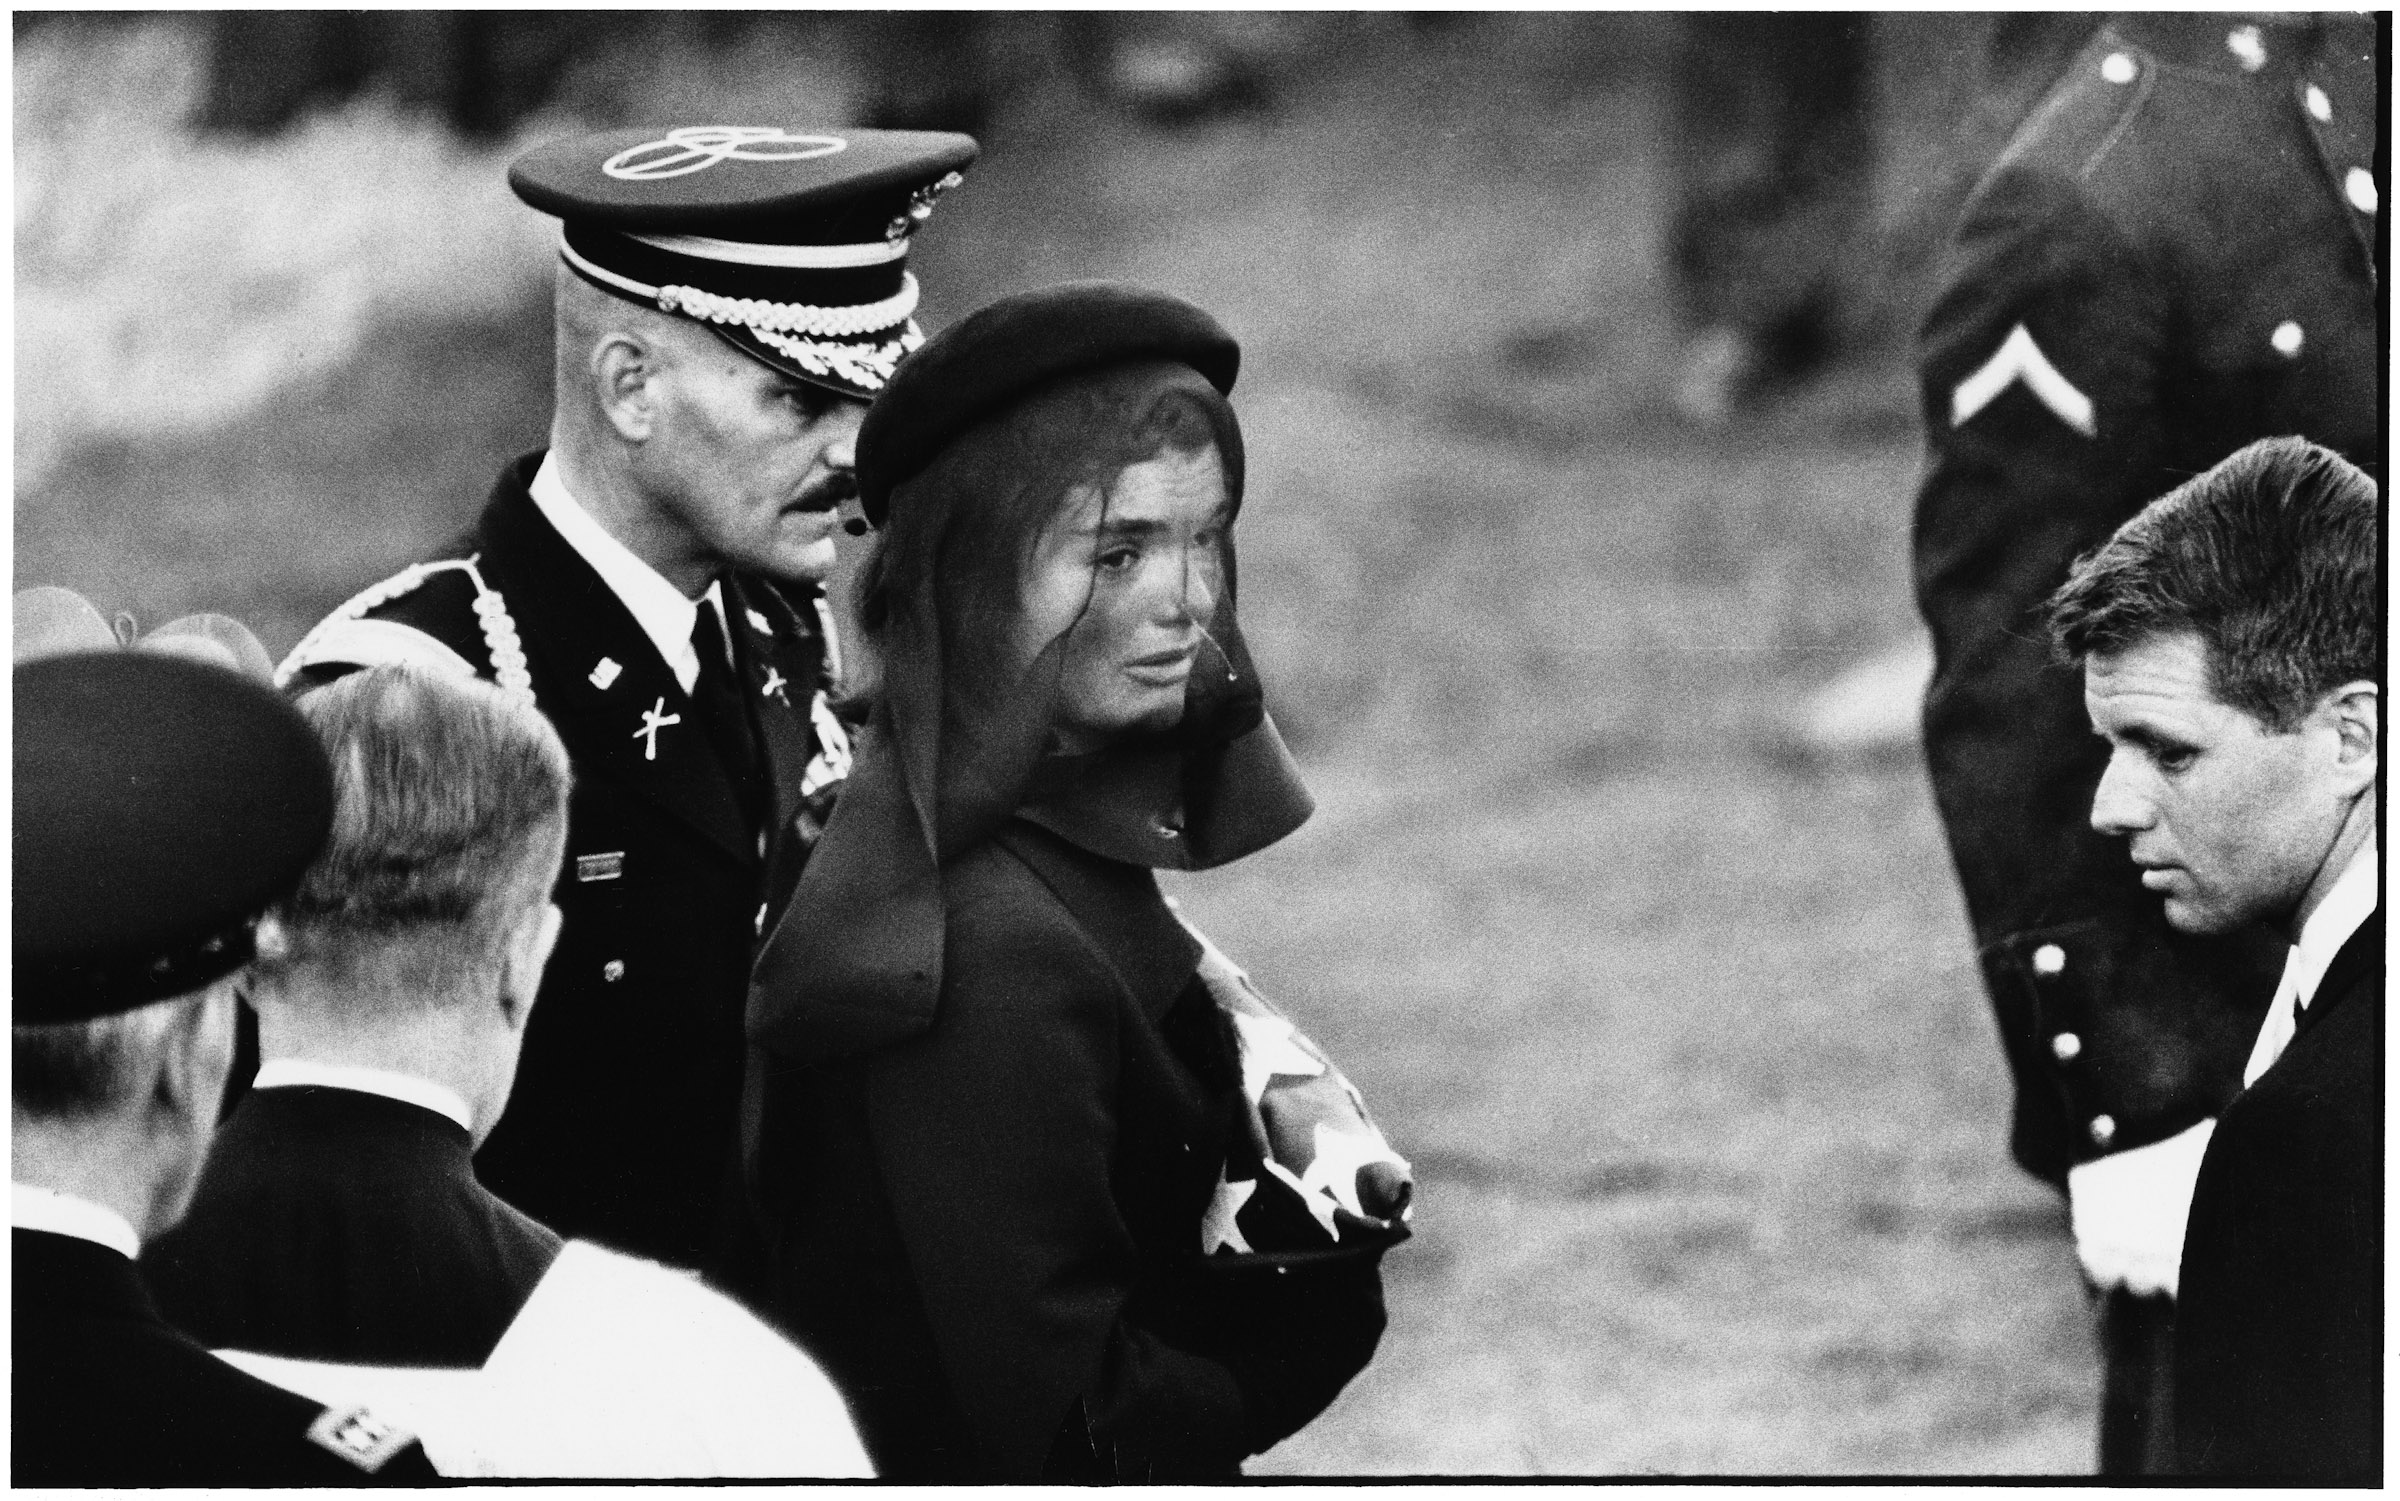 Jacqueline Kennedy at John F. Kennedy's funeral, Arlington, November 25th, 1963